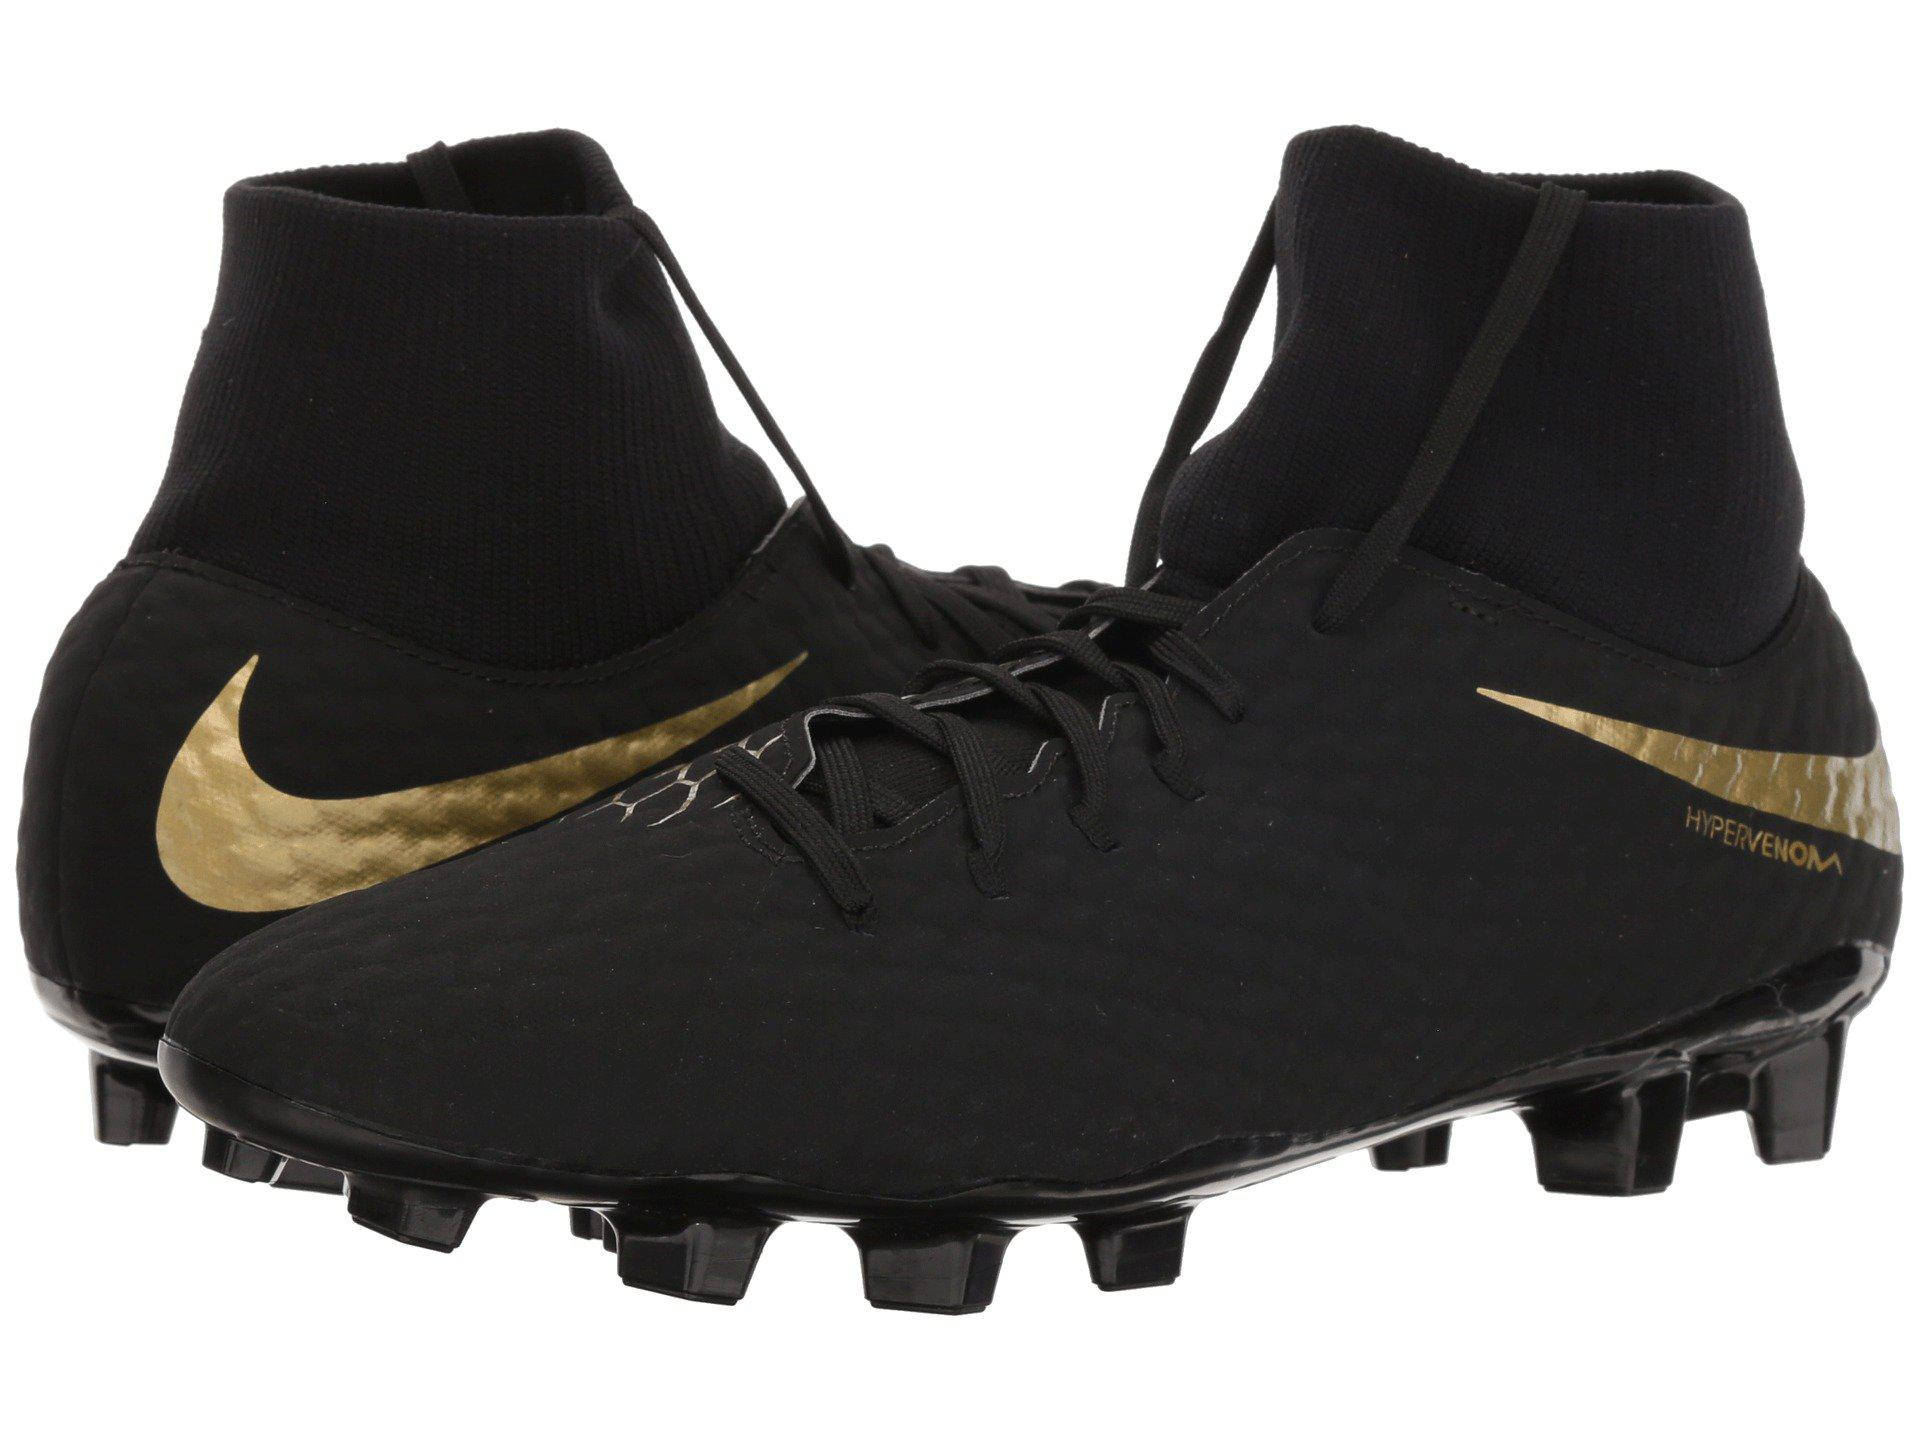 biggest discount where can i buy excellent quality Hypervenom Phantom 3 Academy Dynamic Fit Fg